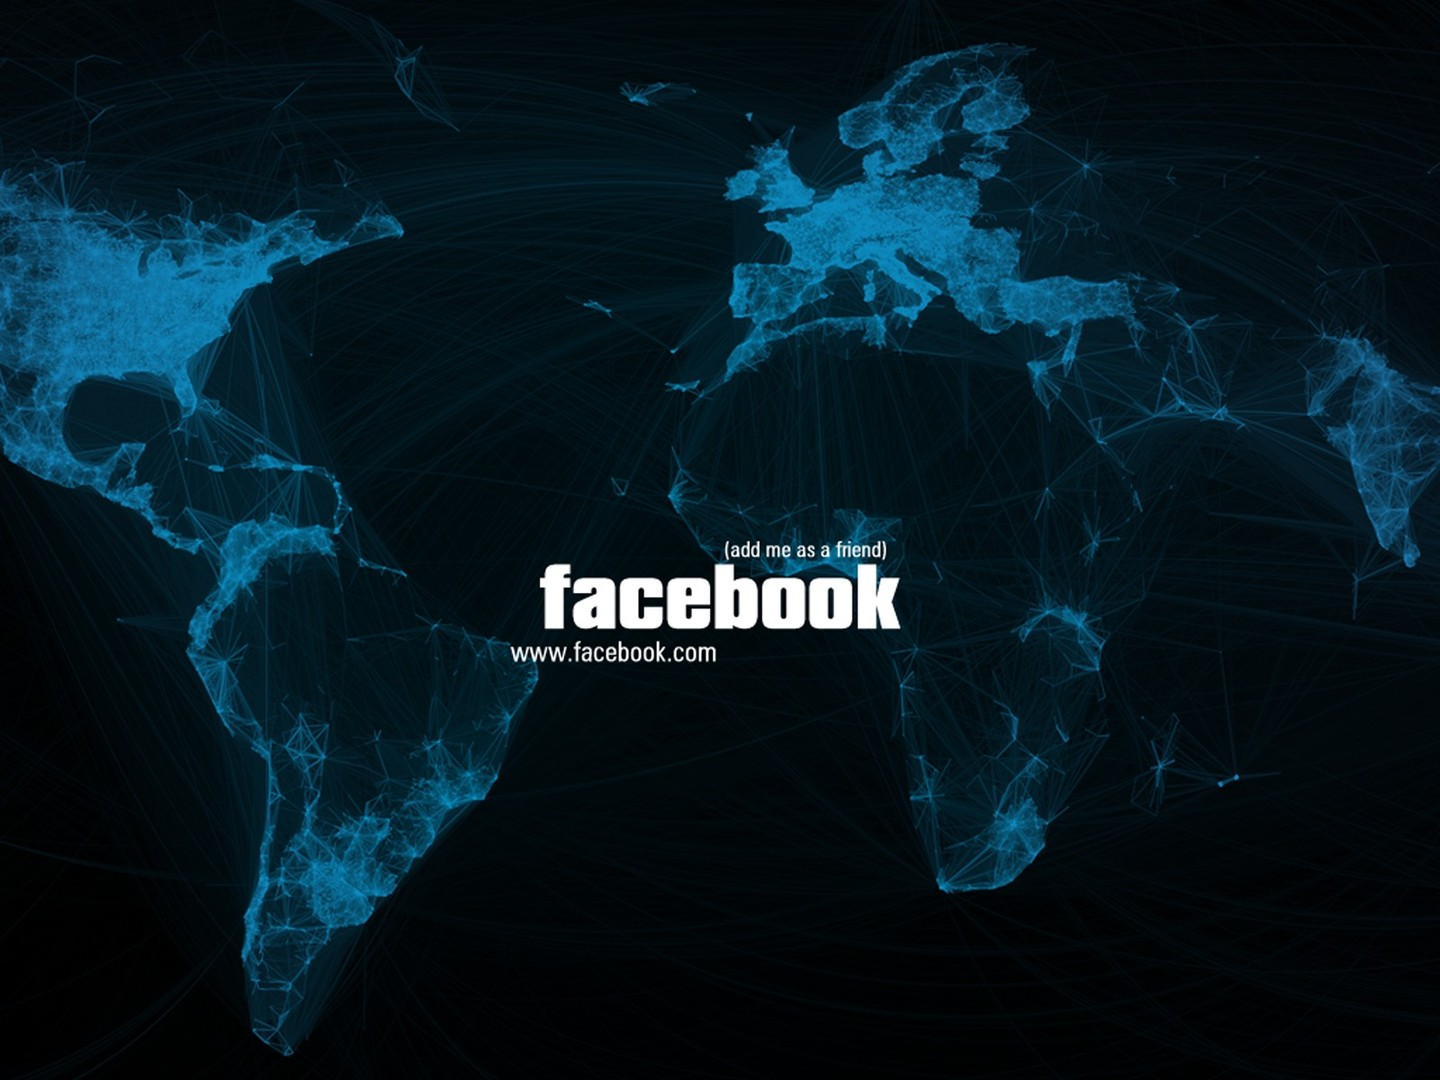 Facebook Wallpapers Backgrounds Hd 01